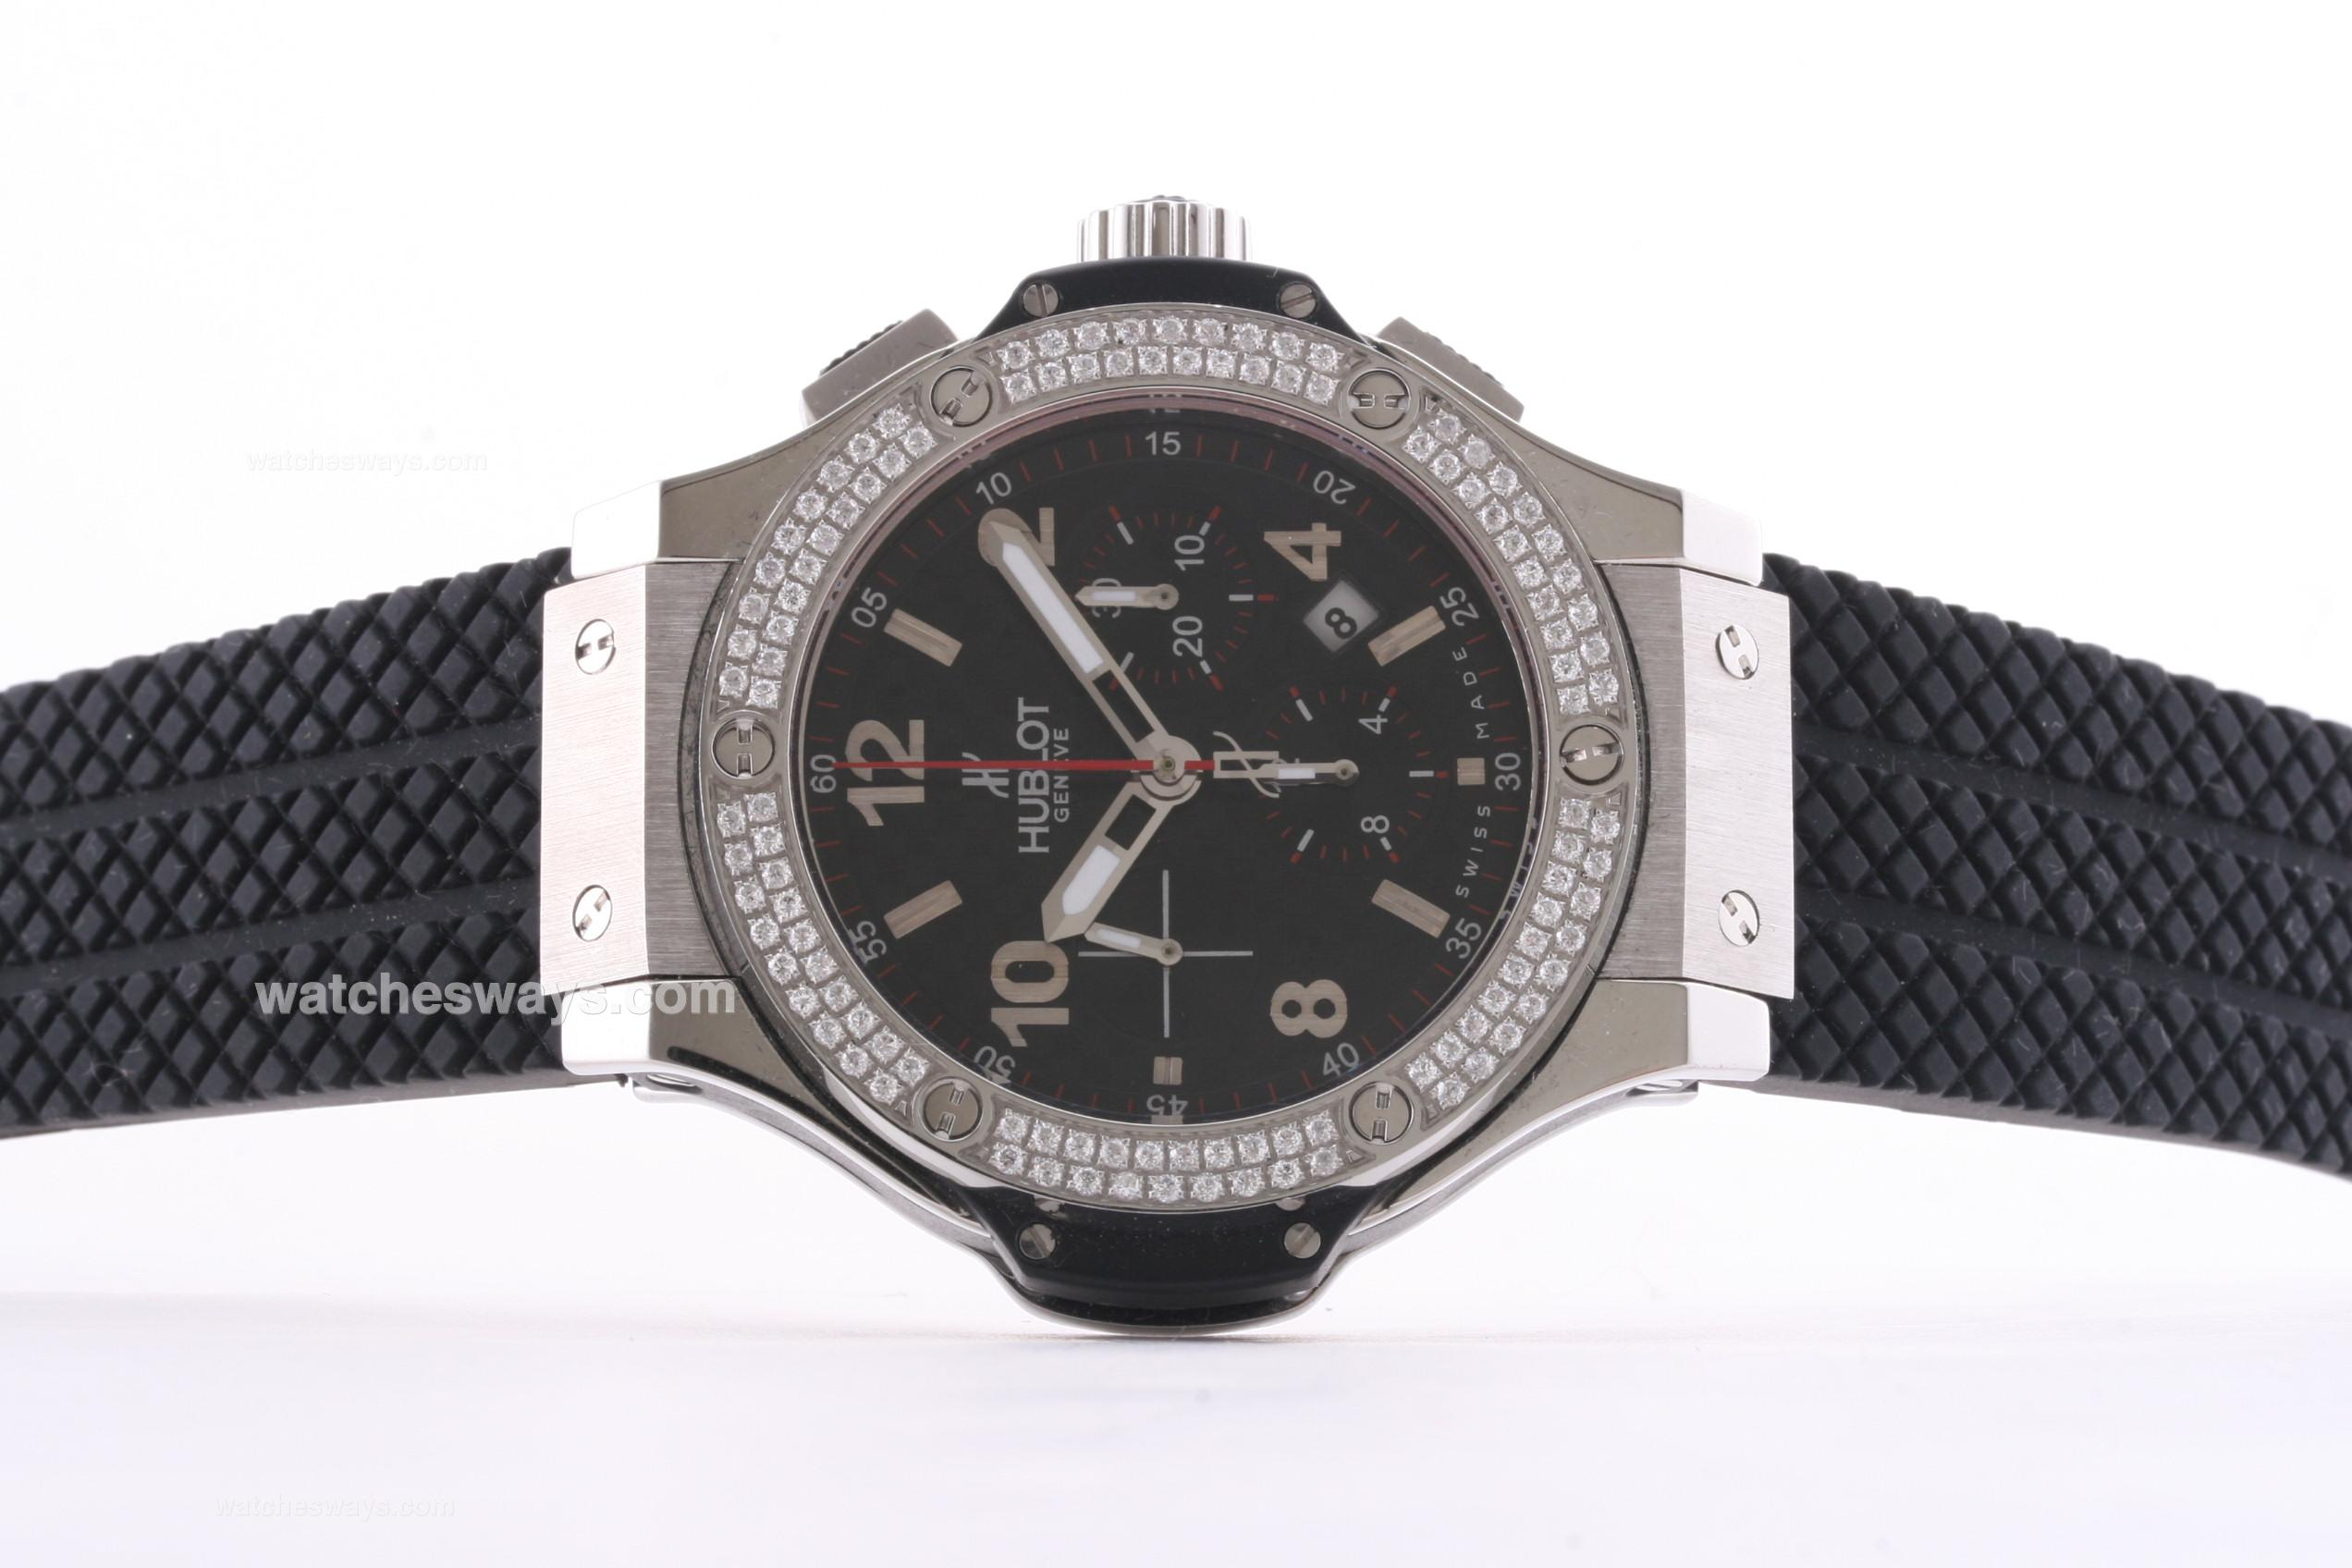 Réplique Hublot Big Bang Montre Chronographe Valjoux 7750 Mouvement Lunette Sertie De Diamants 30406